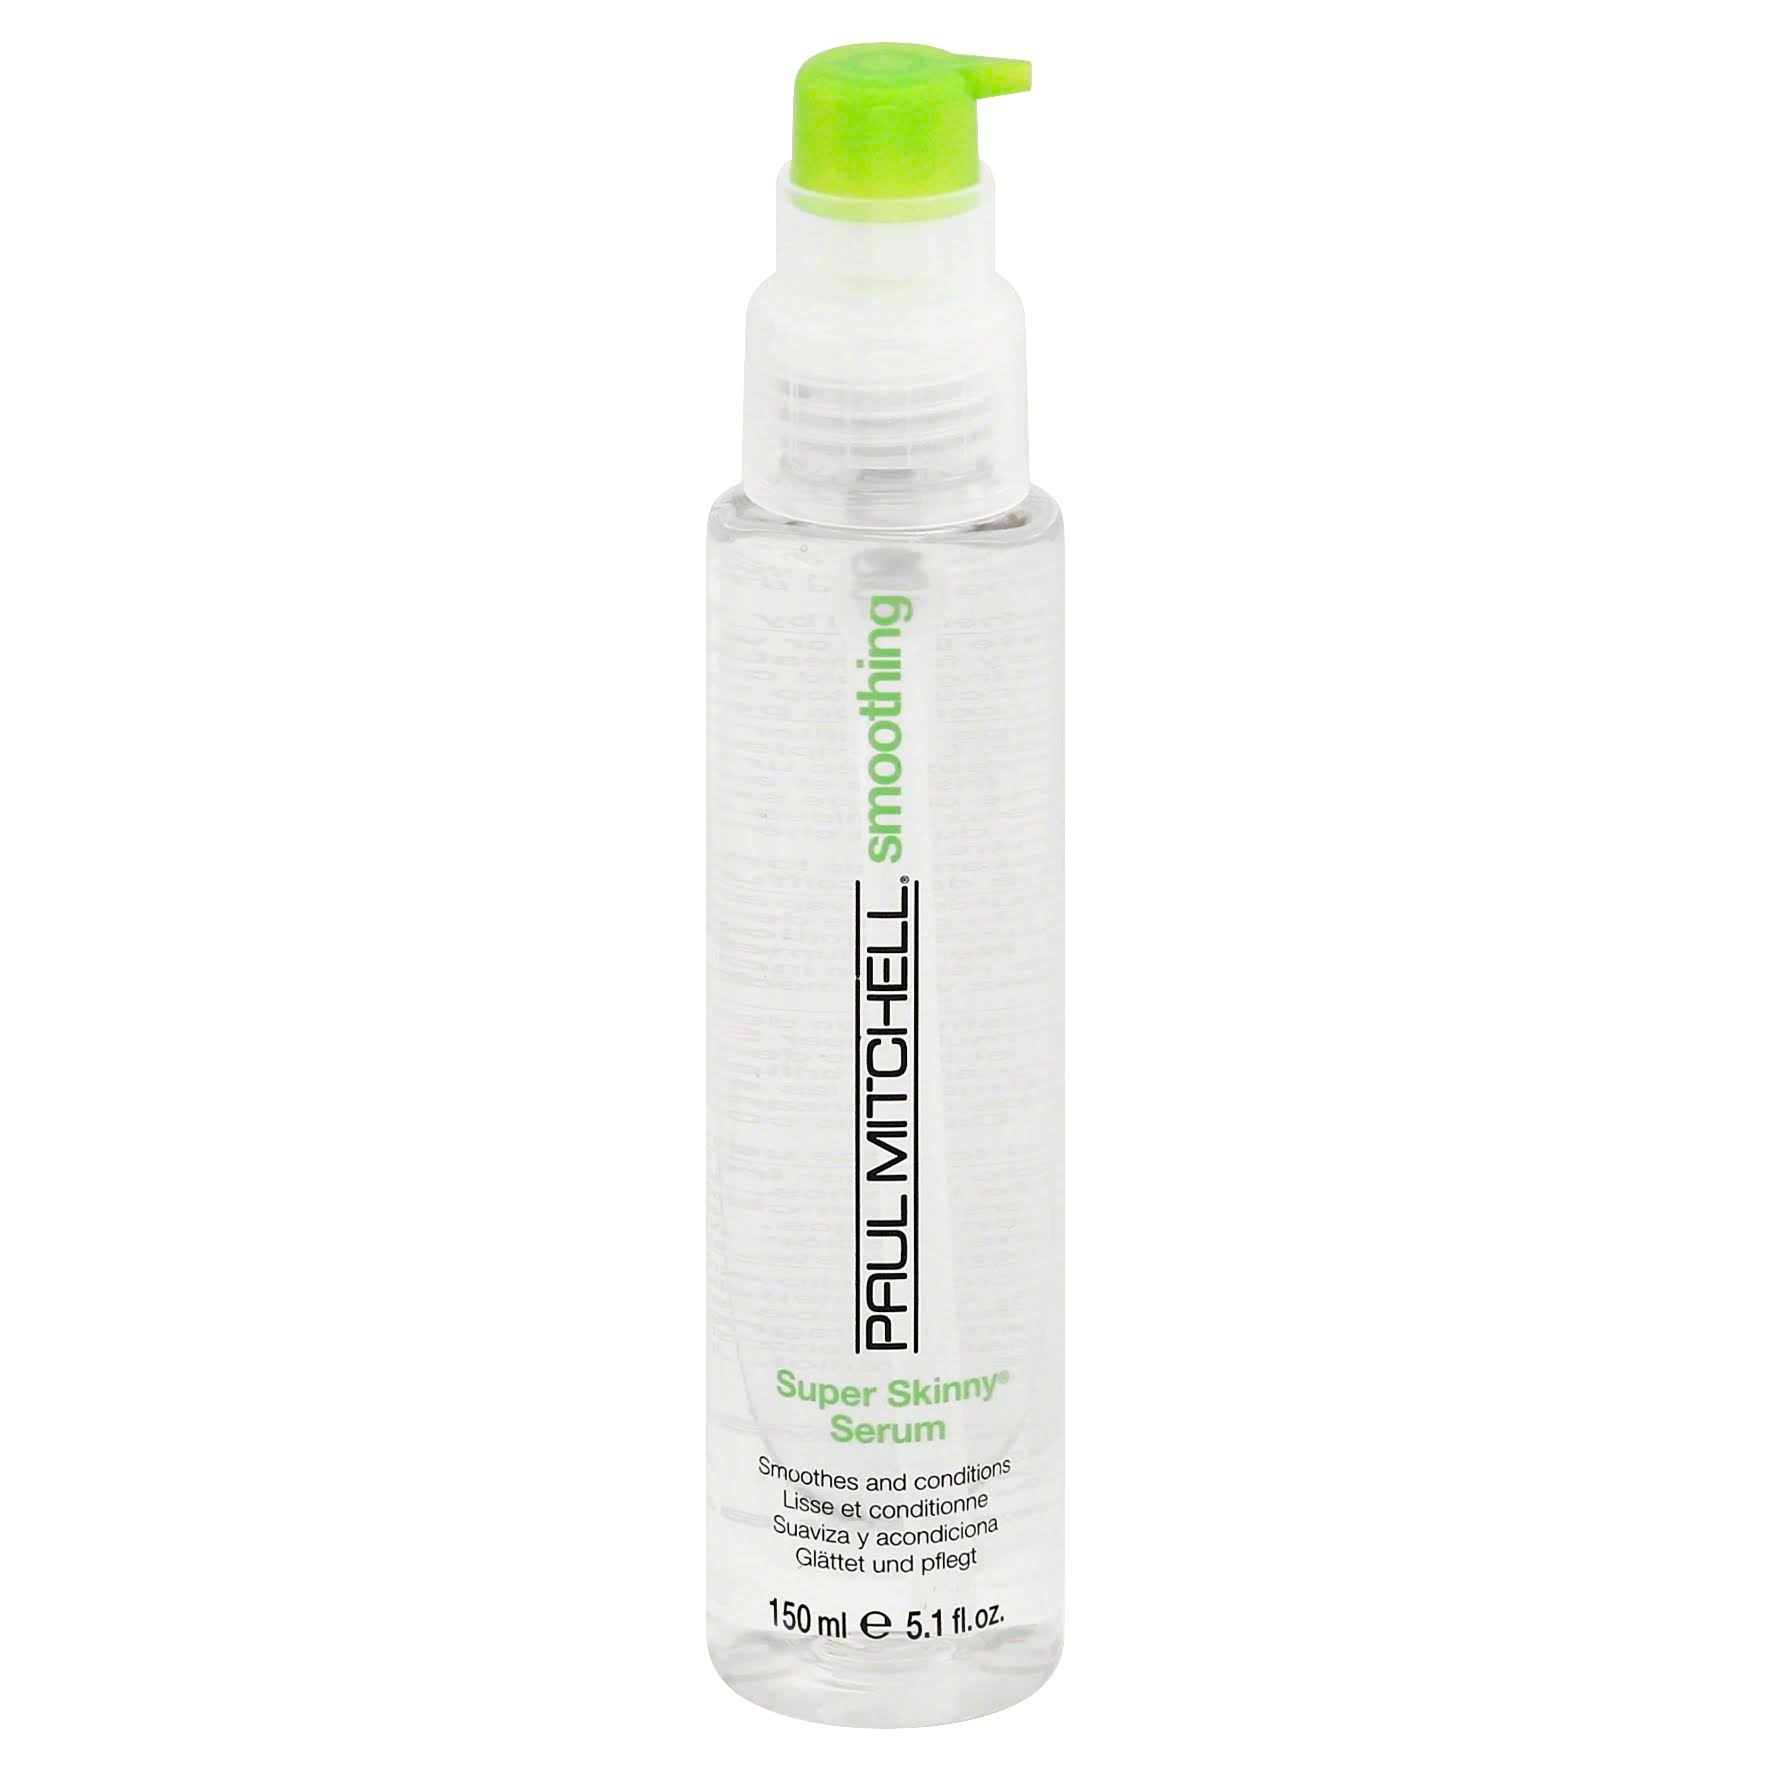 Paul Mitchell Super Skinny Serum - 150ml